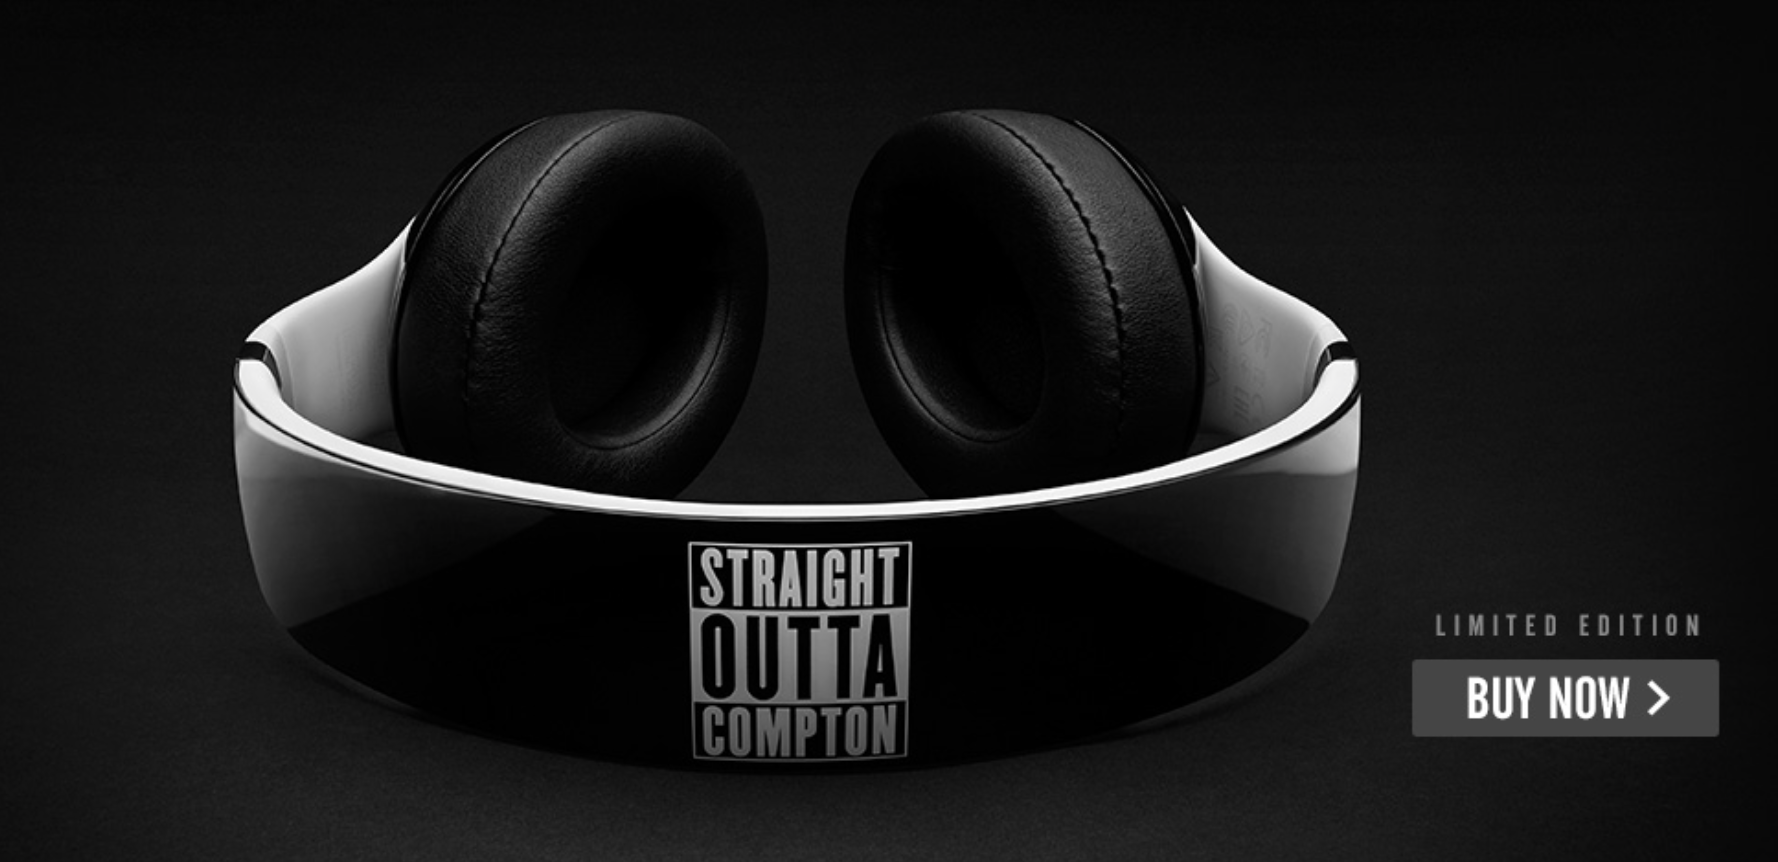 Beats Straight Outta Compton